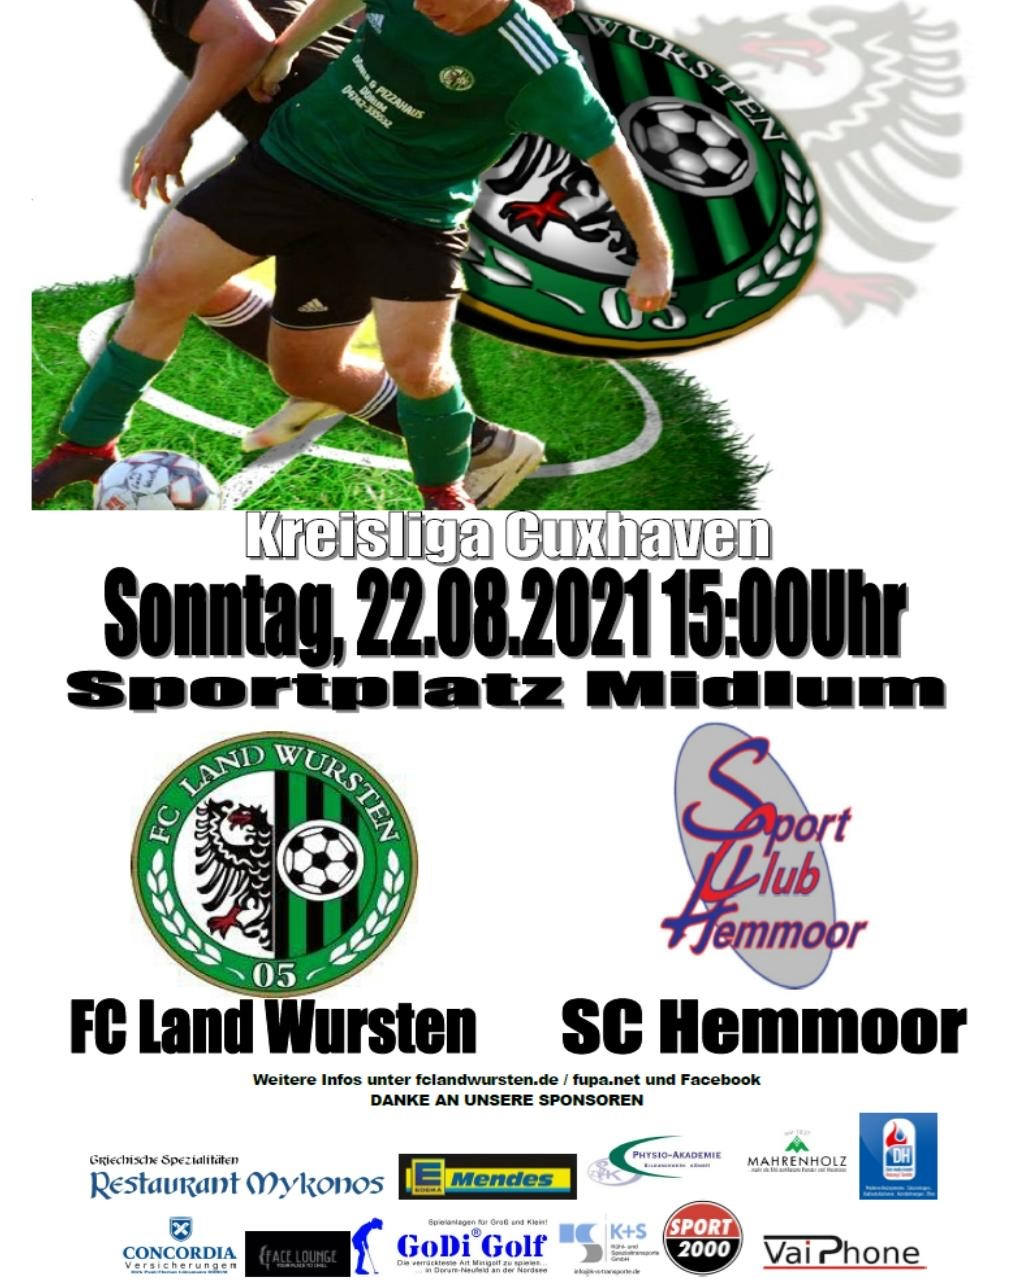 You are currently viewing 2. Spieltag: FC Land Wursten – SC Hemmoor